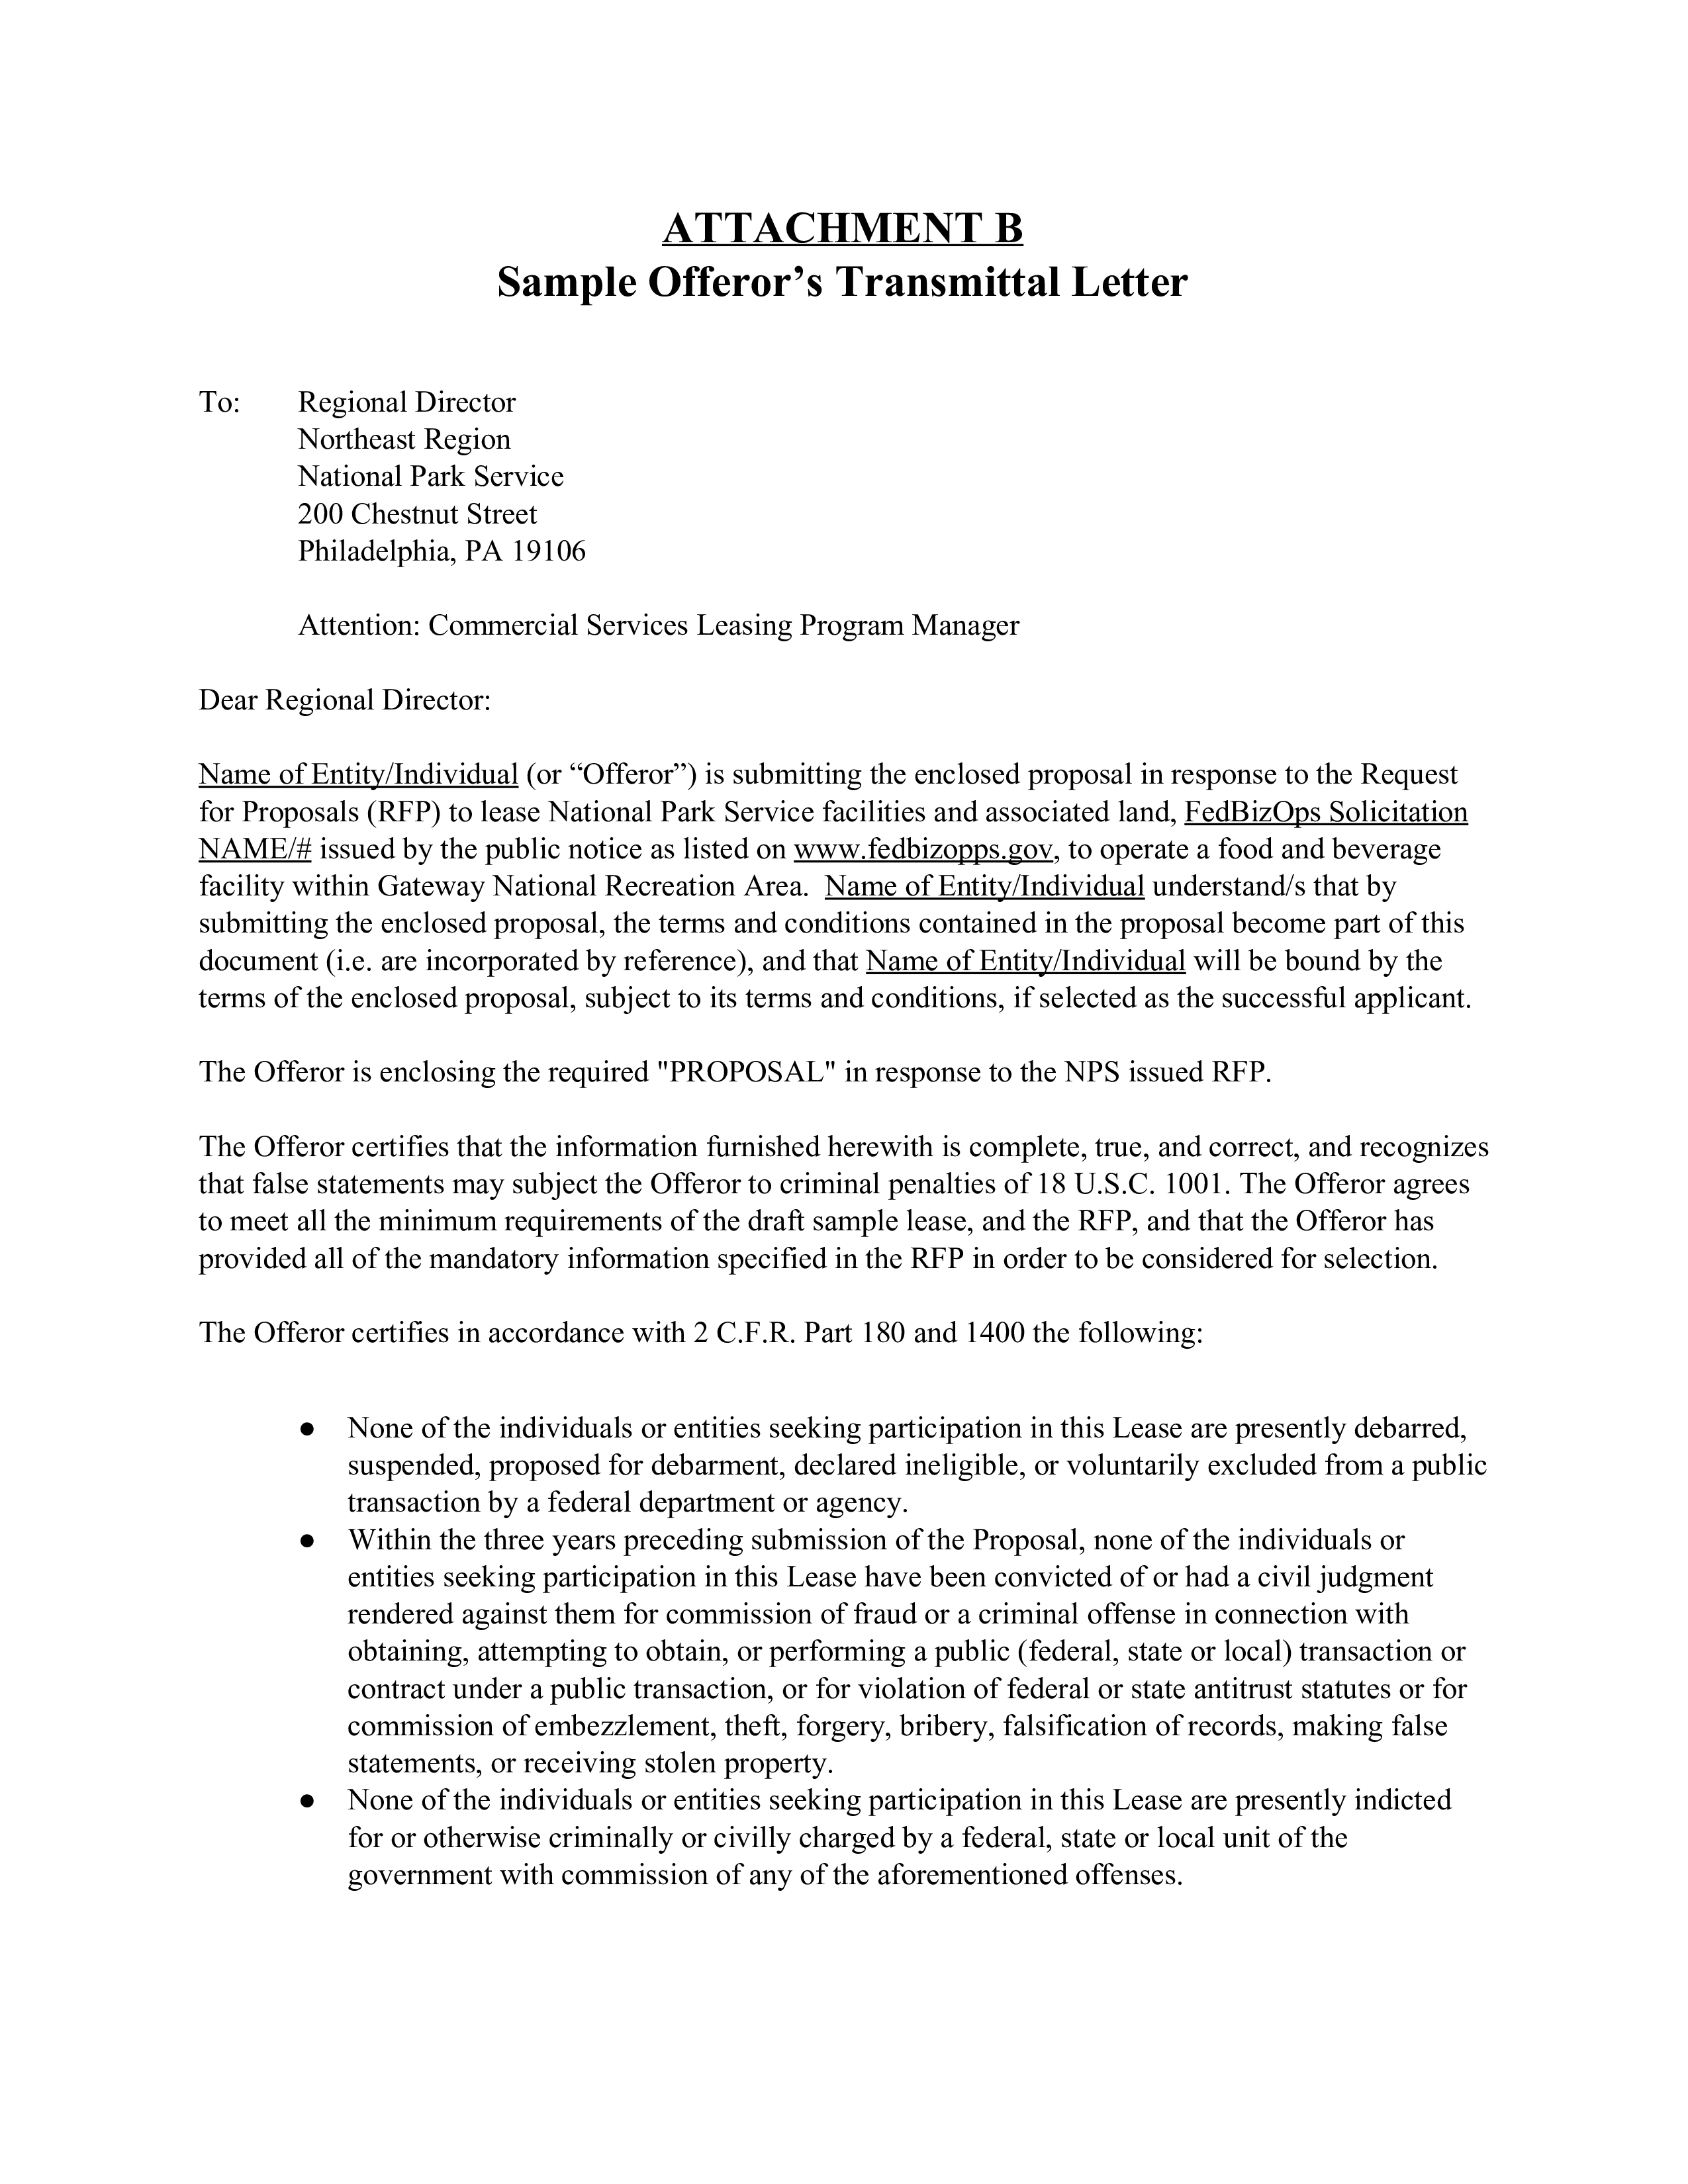 lease transmittal letter main image download template